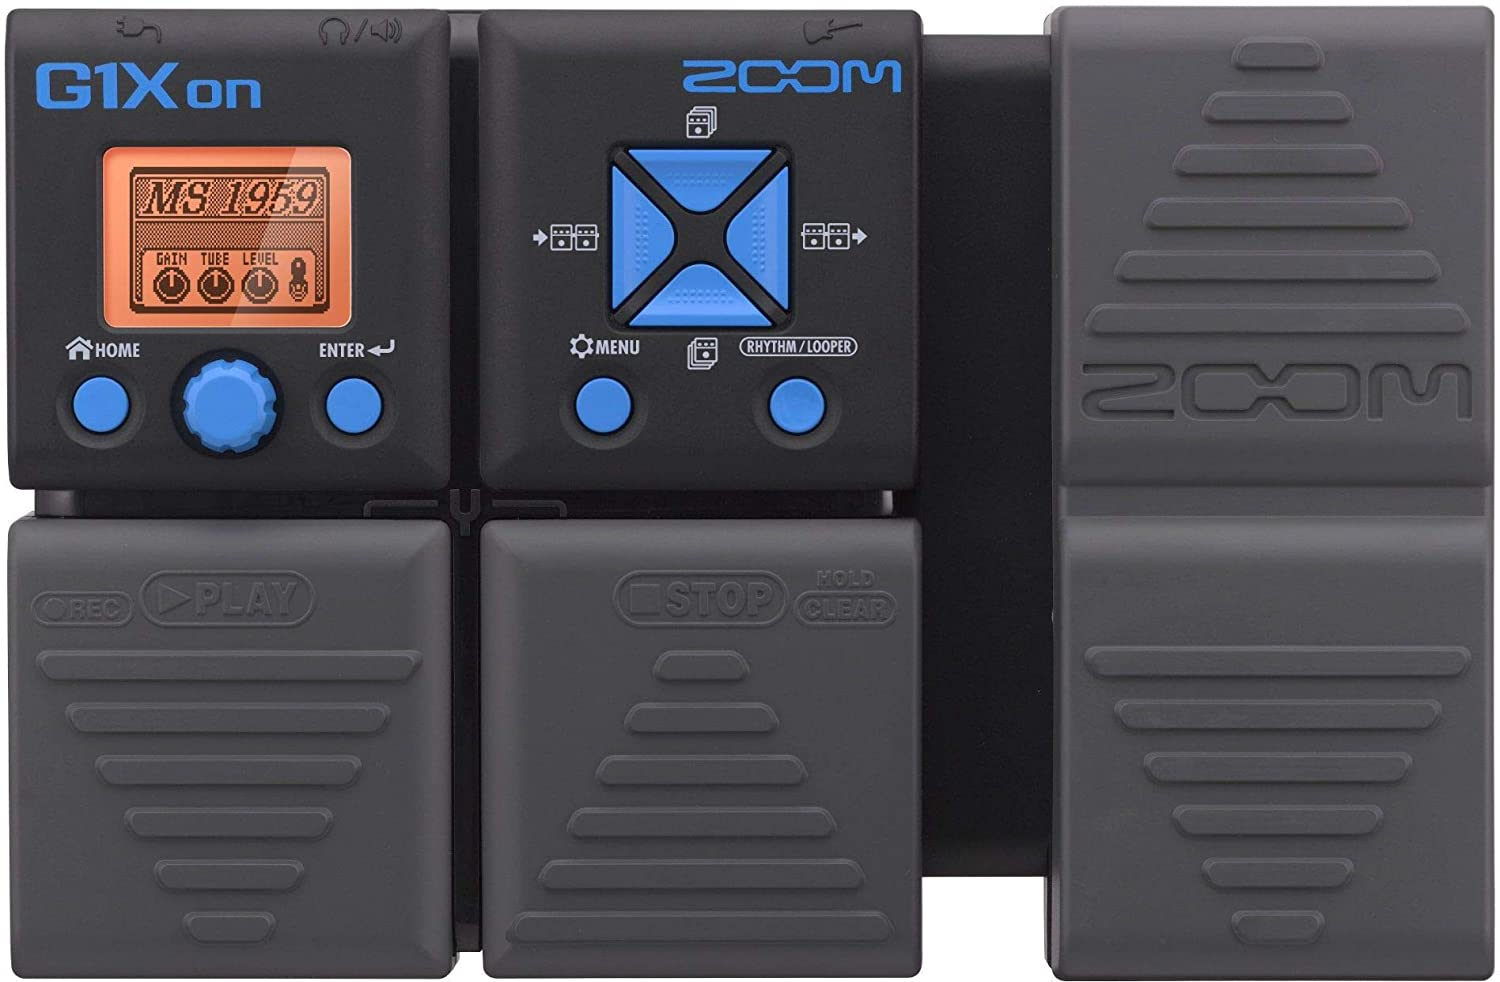 product image of Zoom G1xon